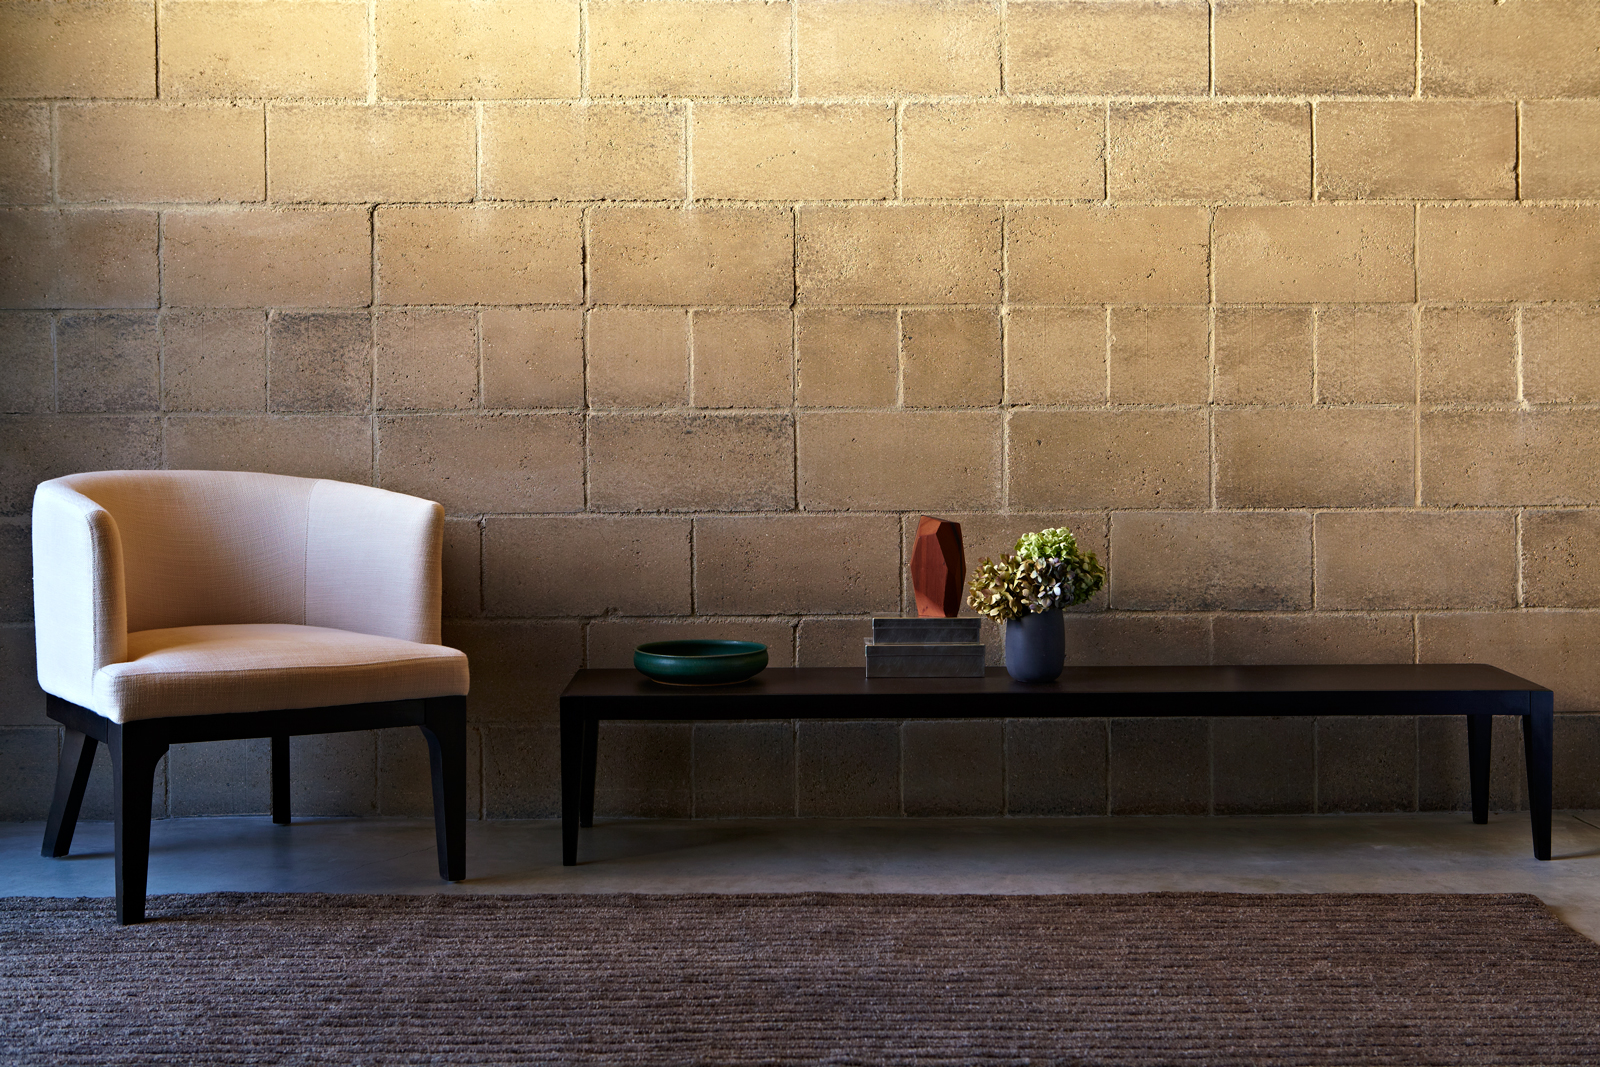 A soldier course of eight inch blocks with a white linen club chair and hand woven Odegard rug. Just as natural rock is made up of a million individual grains of quartz, feldspar, and trace elements, Watershed Blocks celebrate their unique composition. Unlike uniform concrete blocks, made of cement and dye, no two Watershed Blocks are exactly the same. Find out more at the  Watershed Materials  website.